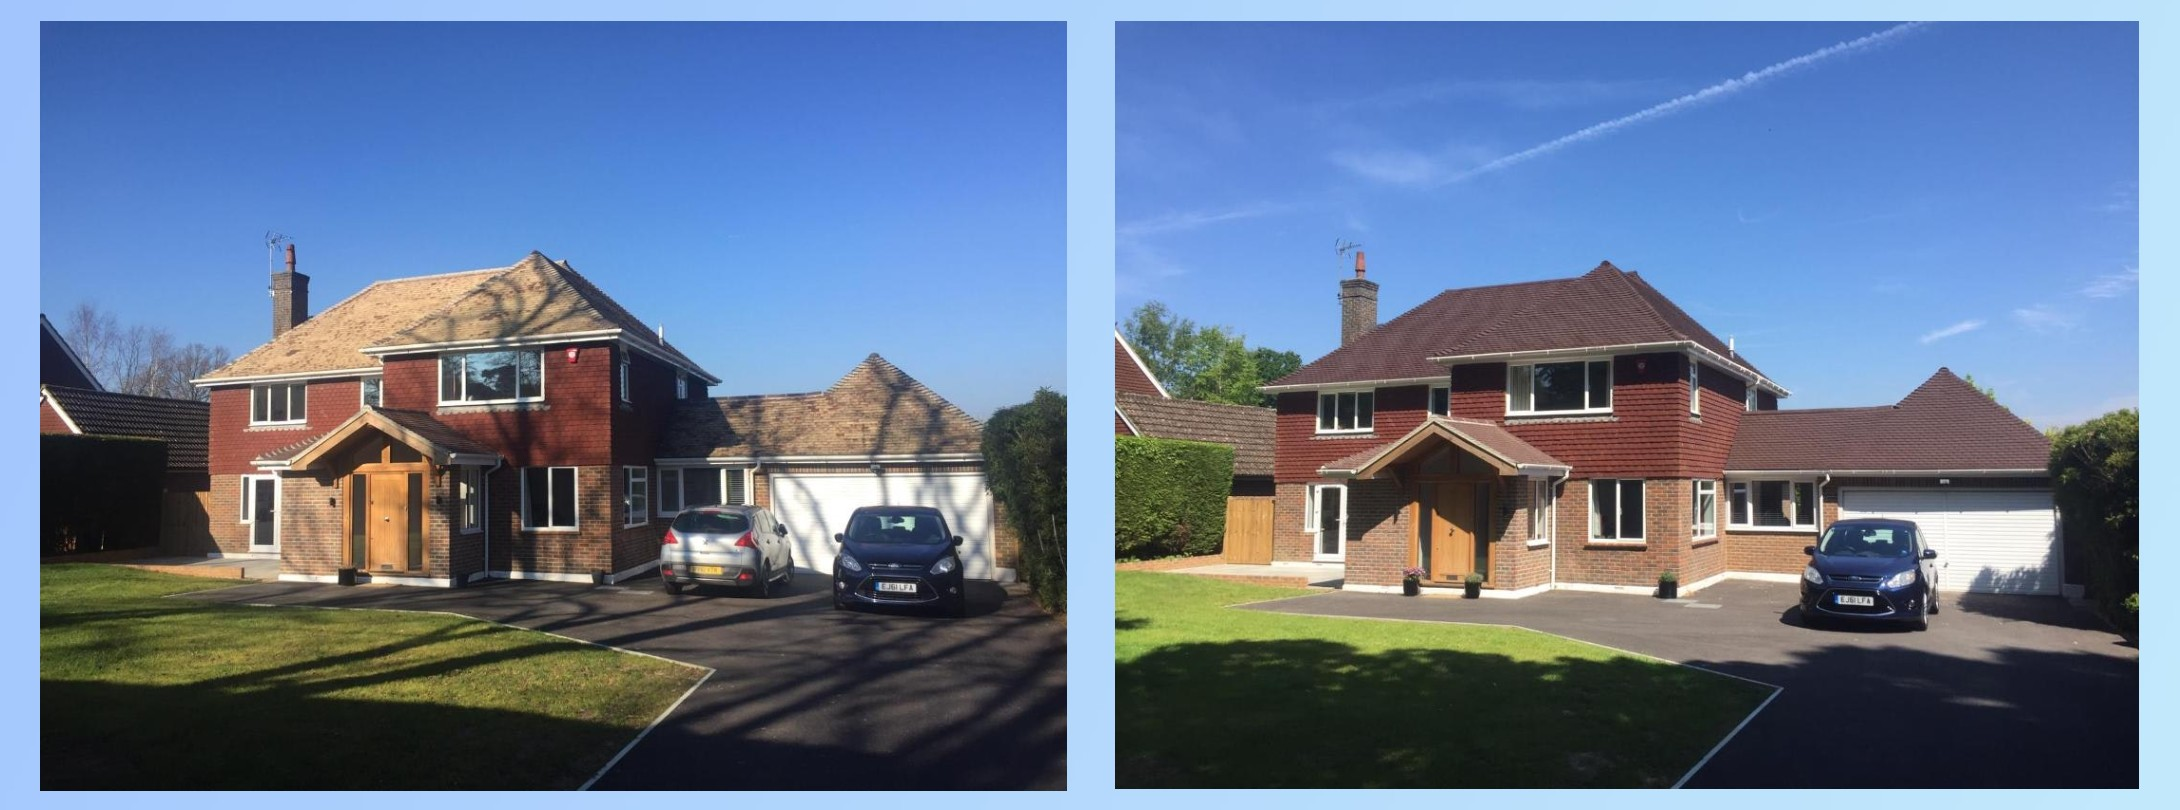 Before & After detached house. Brown roof tiles.